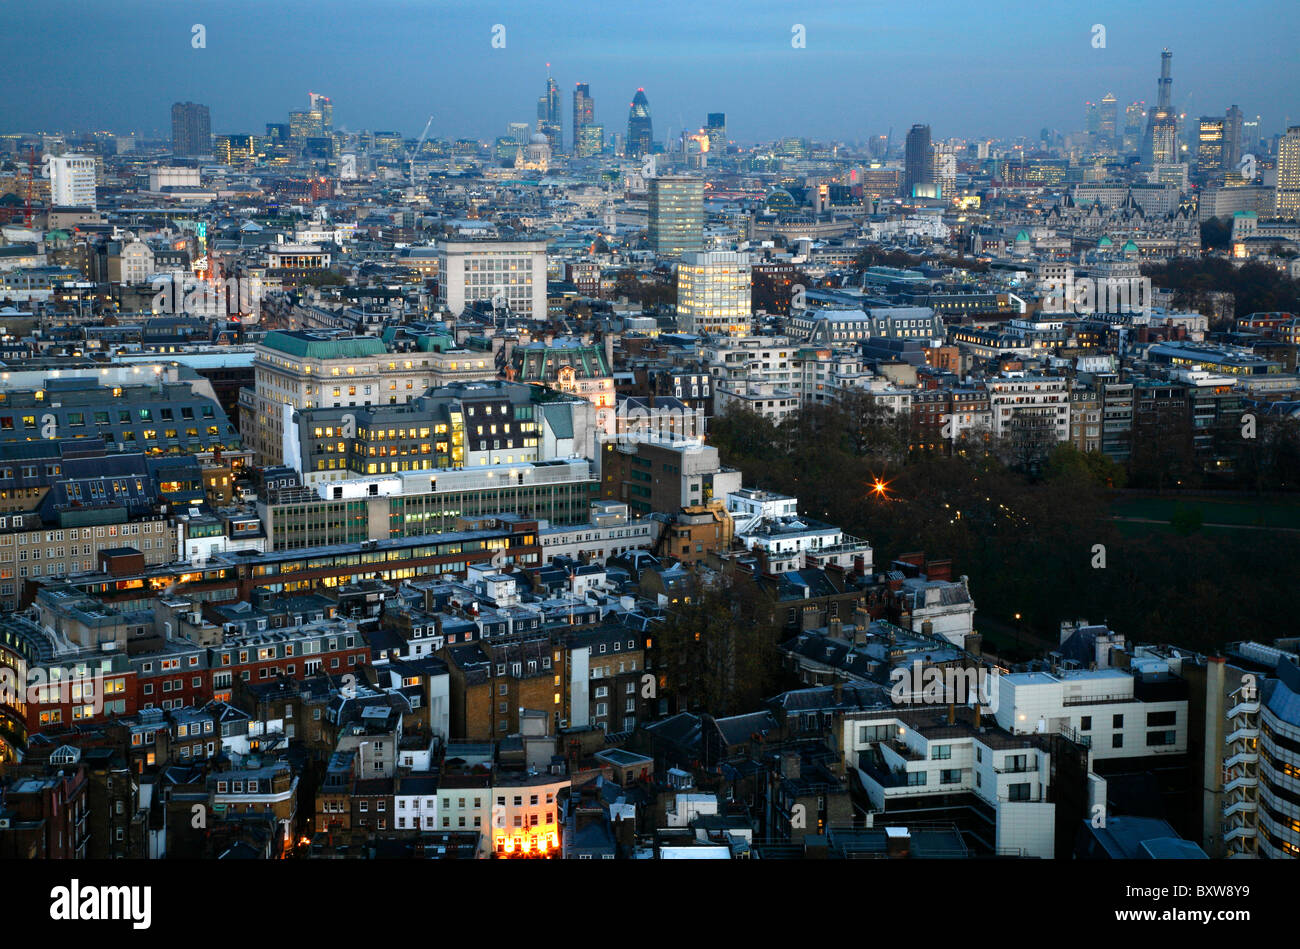 Skyline view looking east over Mayfair, Green Park and St James's towards the City of London, UK - Stock Image